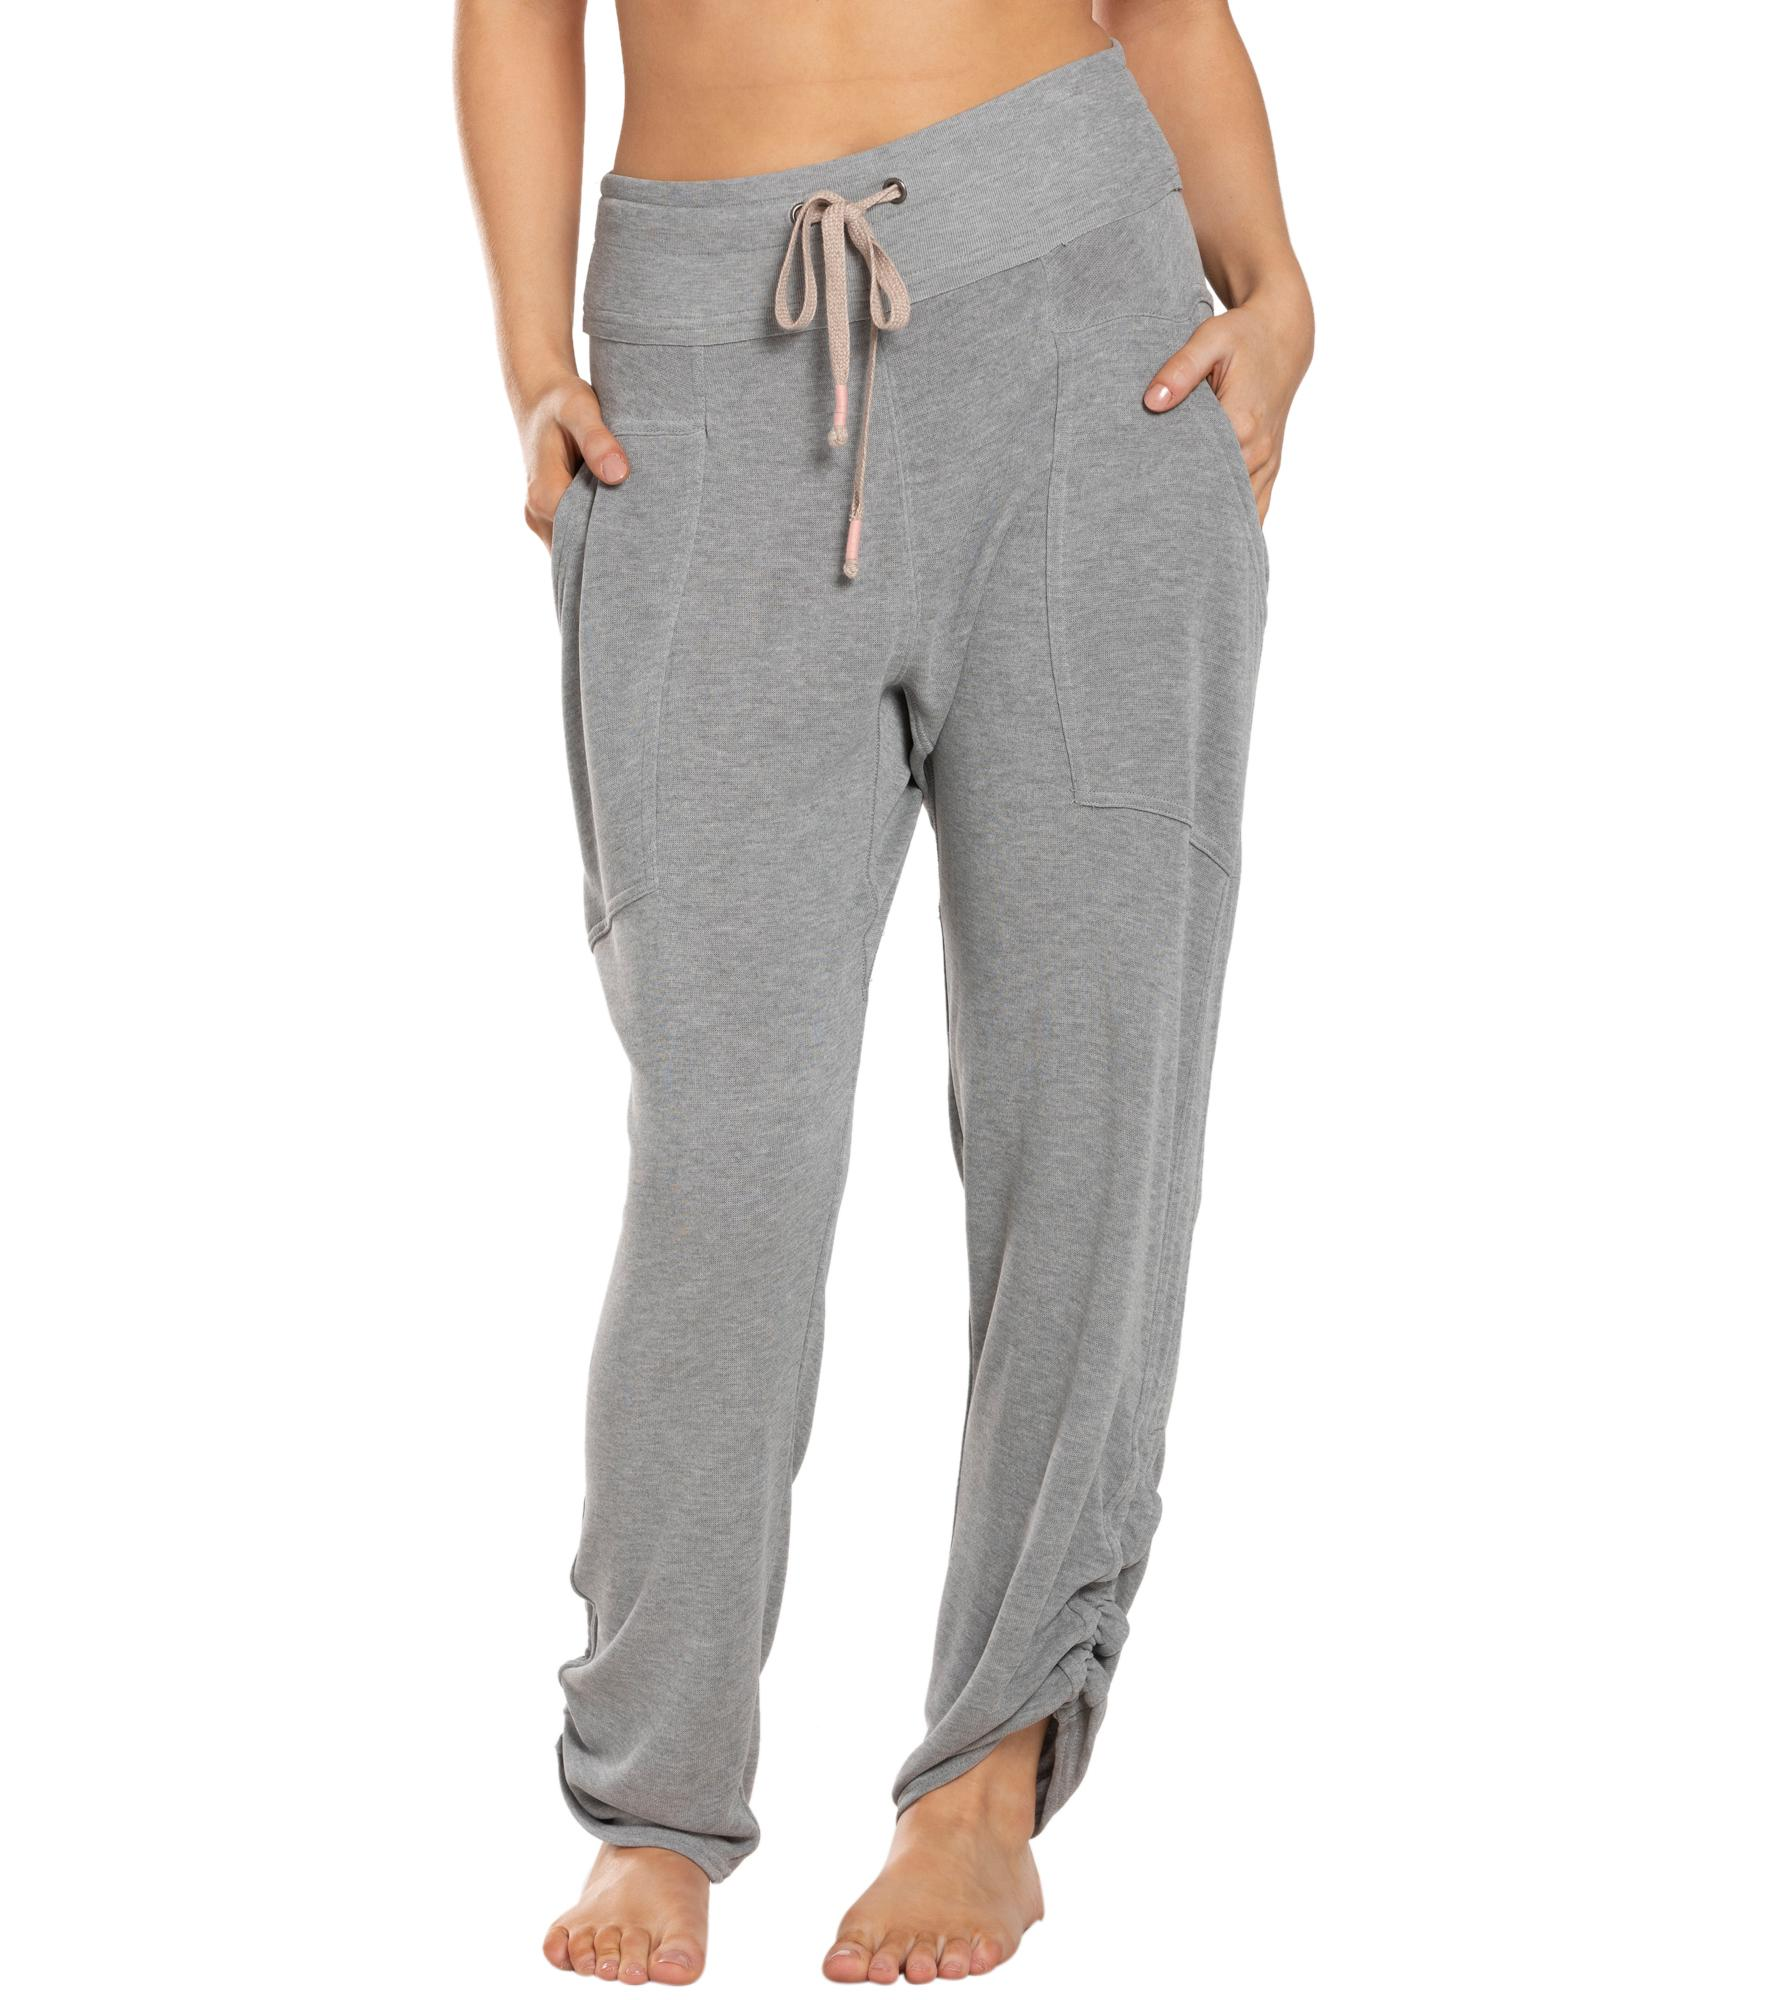 Free People Movement Ready Go Pants - Grey Combo Spandex